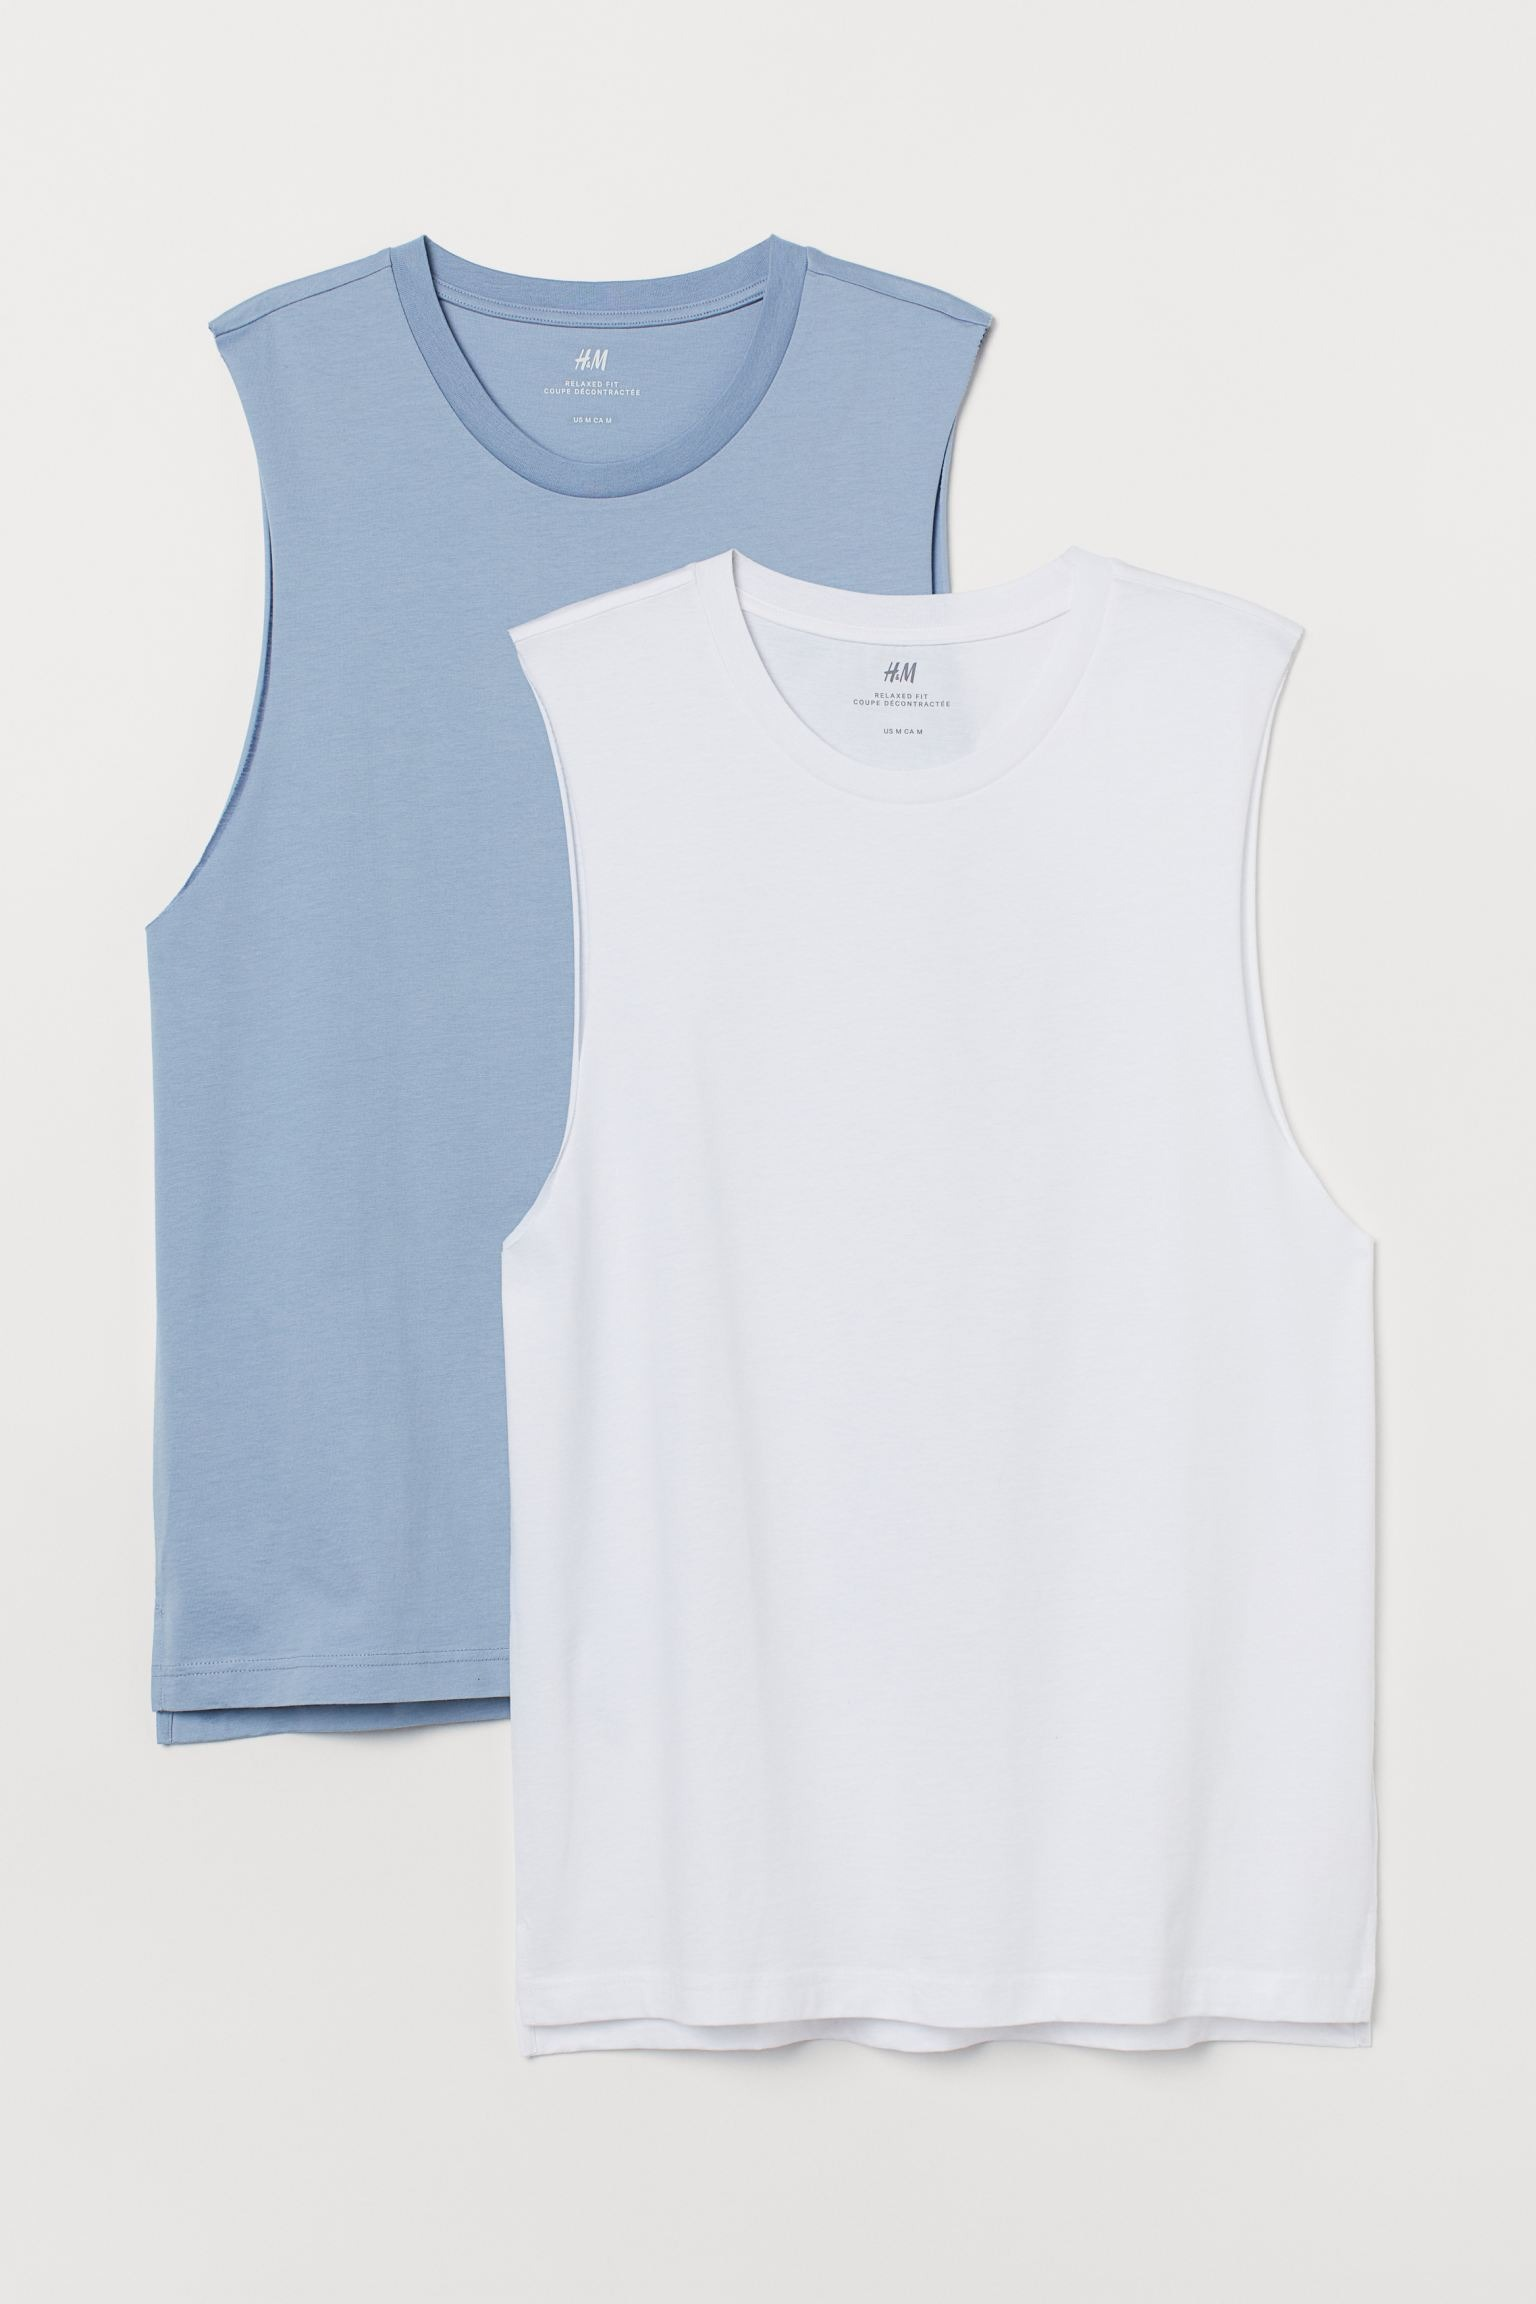 H&M 2-pack Relaxed Fit Tank Tops